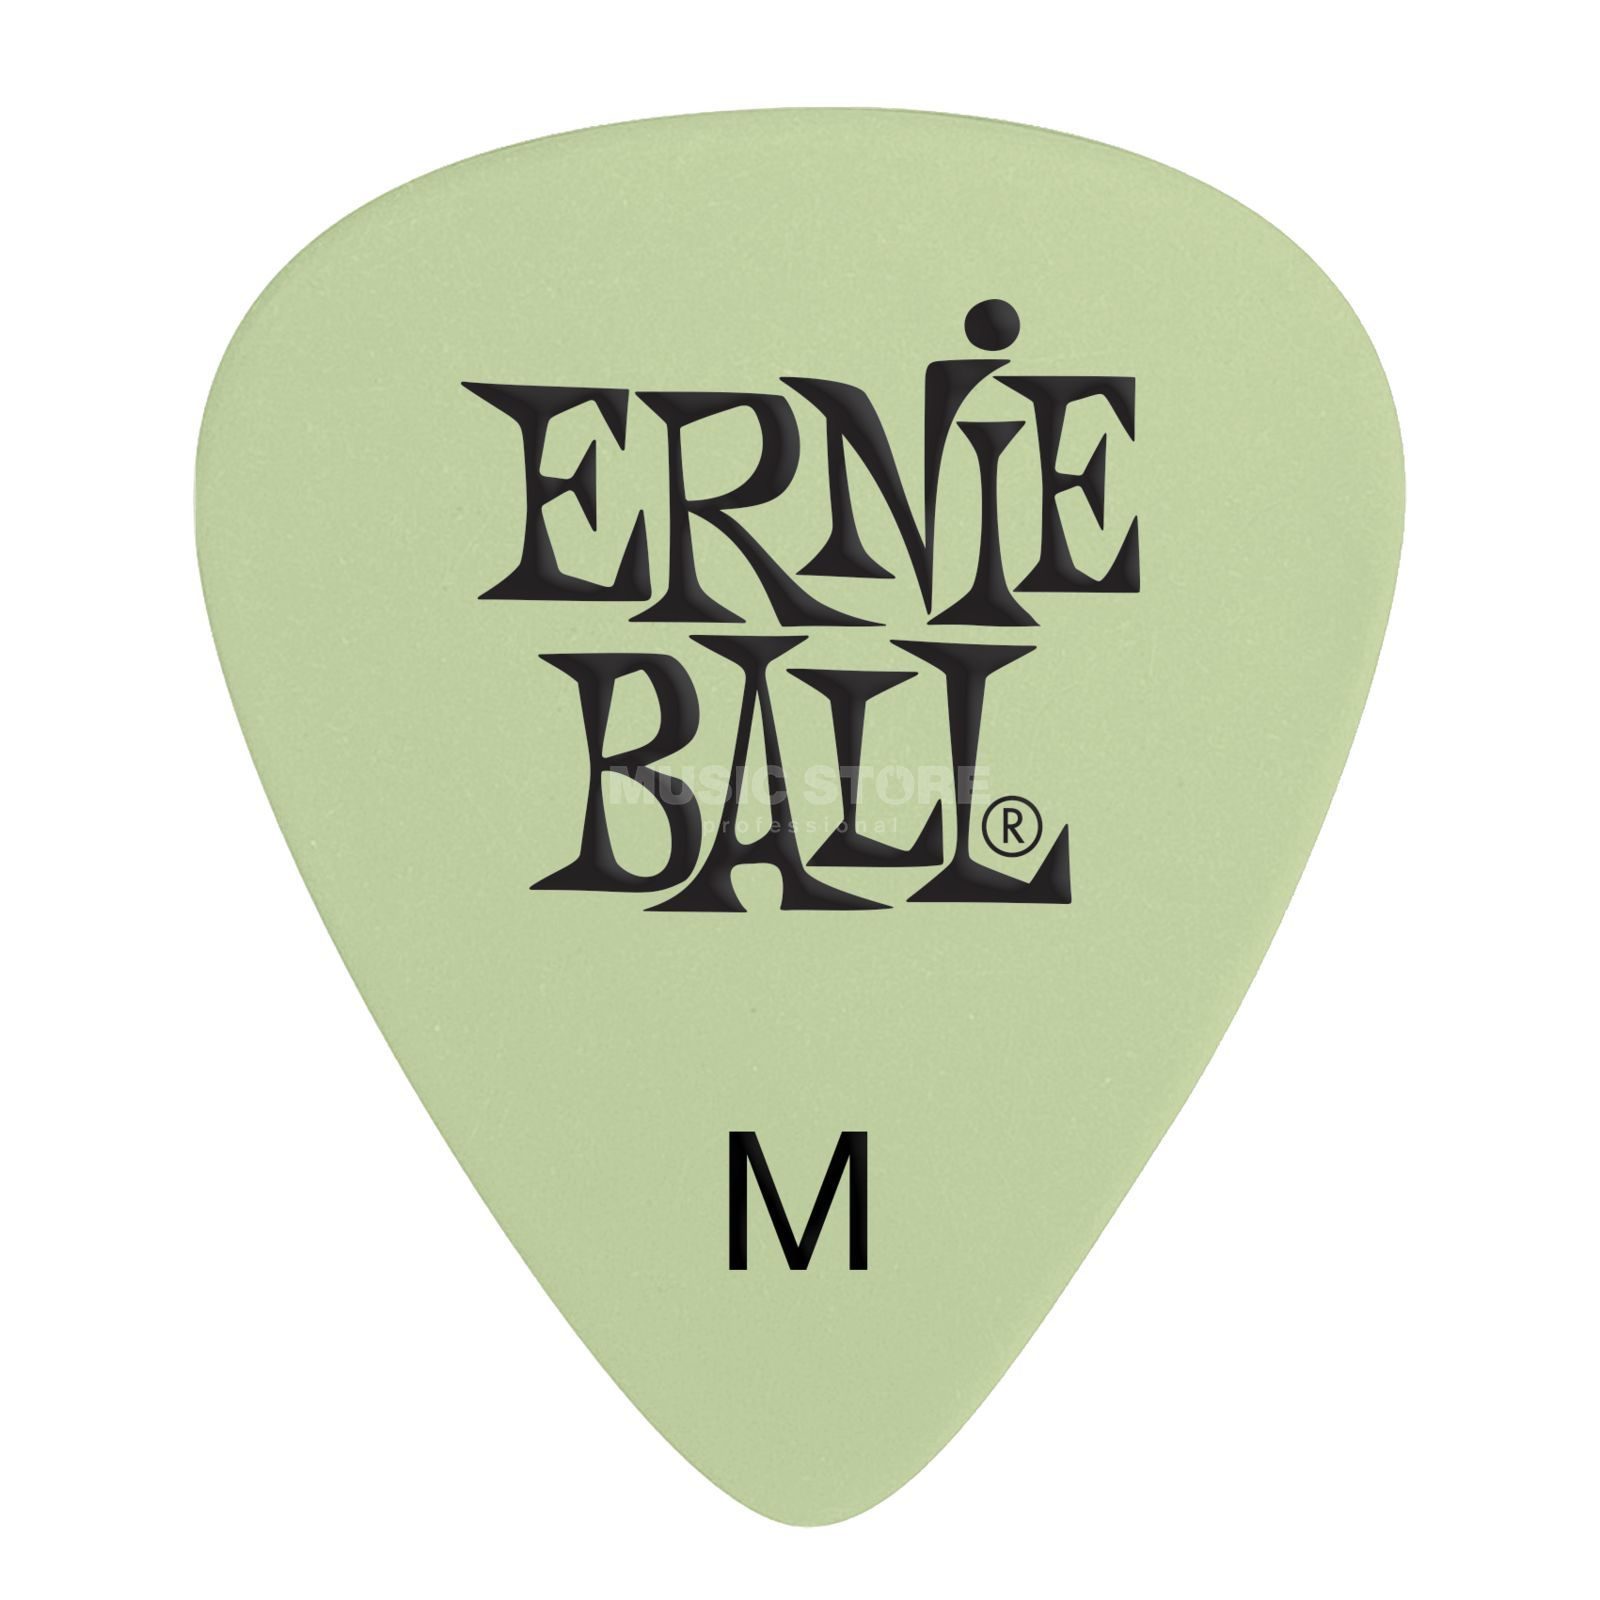 Ernie Ball 9225 Glow Picks Product Image